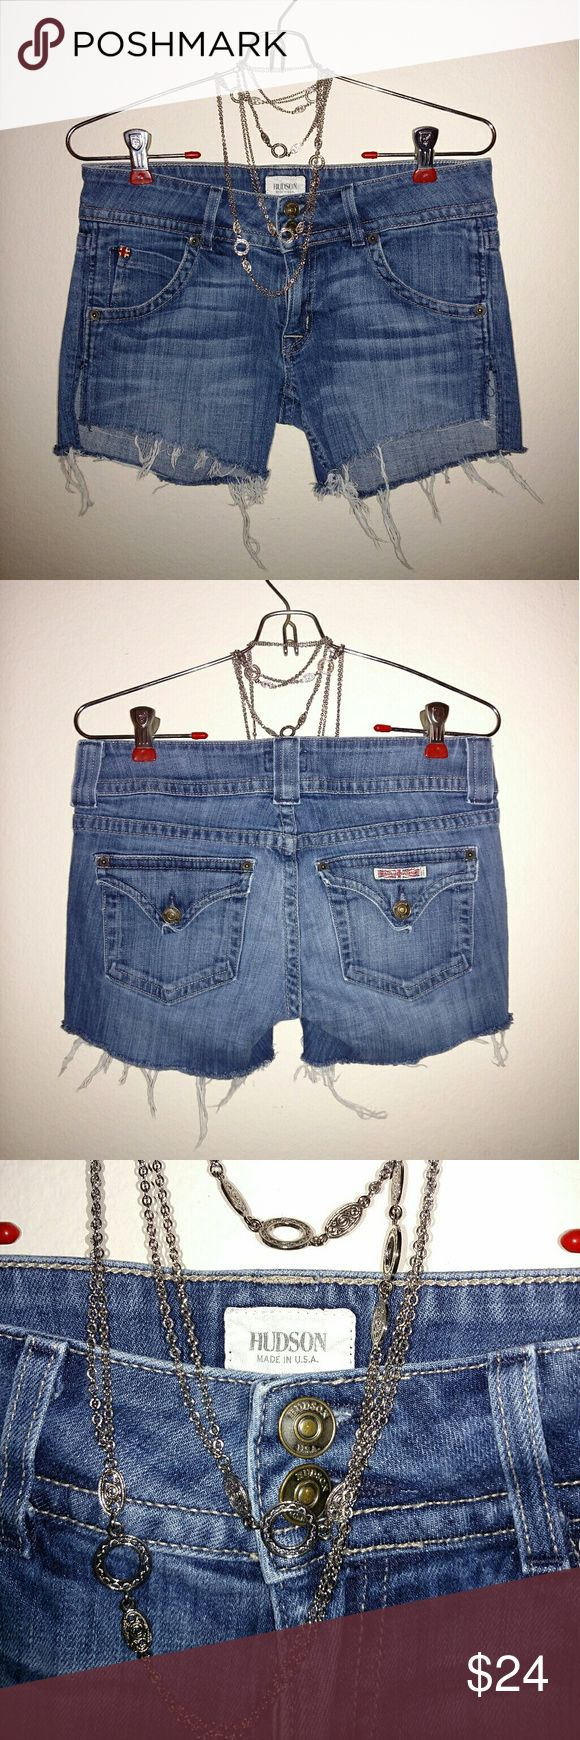 Hudson Jean Shorts 27 Hudson Jean Shorts ~ Size 27 (IMO they fit like a 25/26). Great condition & perfect for Summer!  Bundle to save 10% ~ Feel free to send offers! Hudson Jeans Shorts Jean Shorts